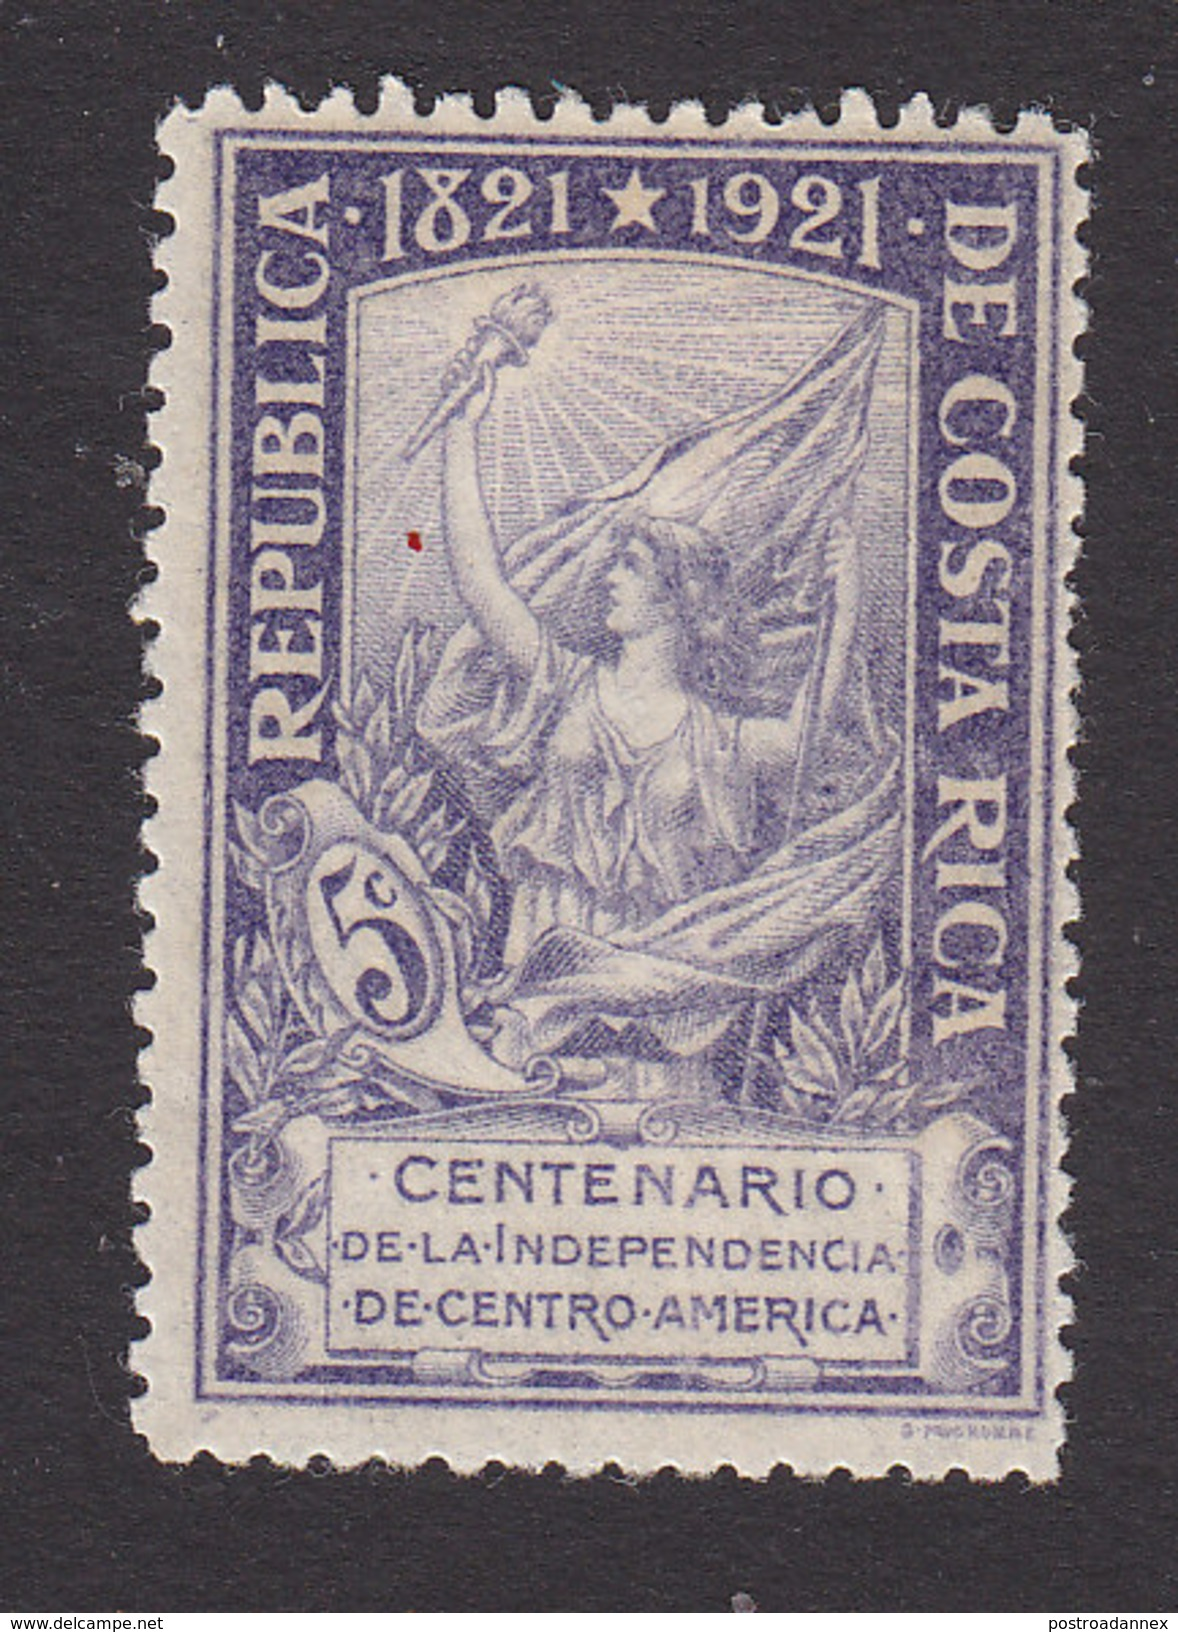 Costa Rica, Scott #104, Mint Hinged, Liberty With Torch Of Freedom, Issued 1921 - Costa Rica